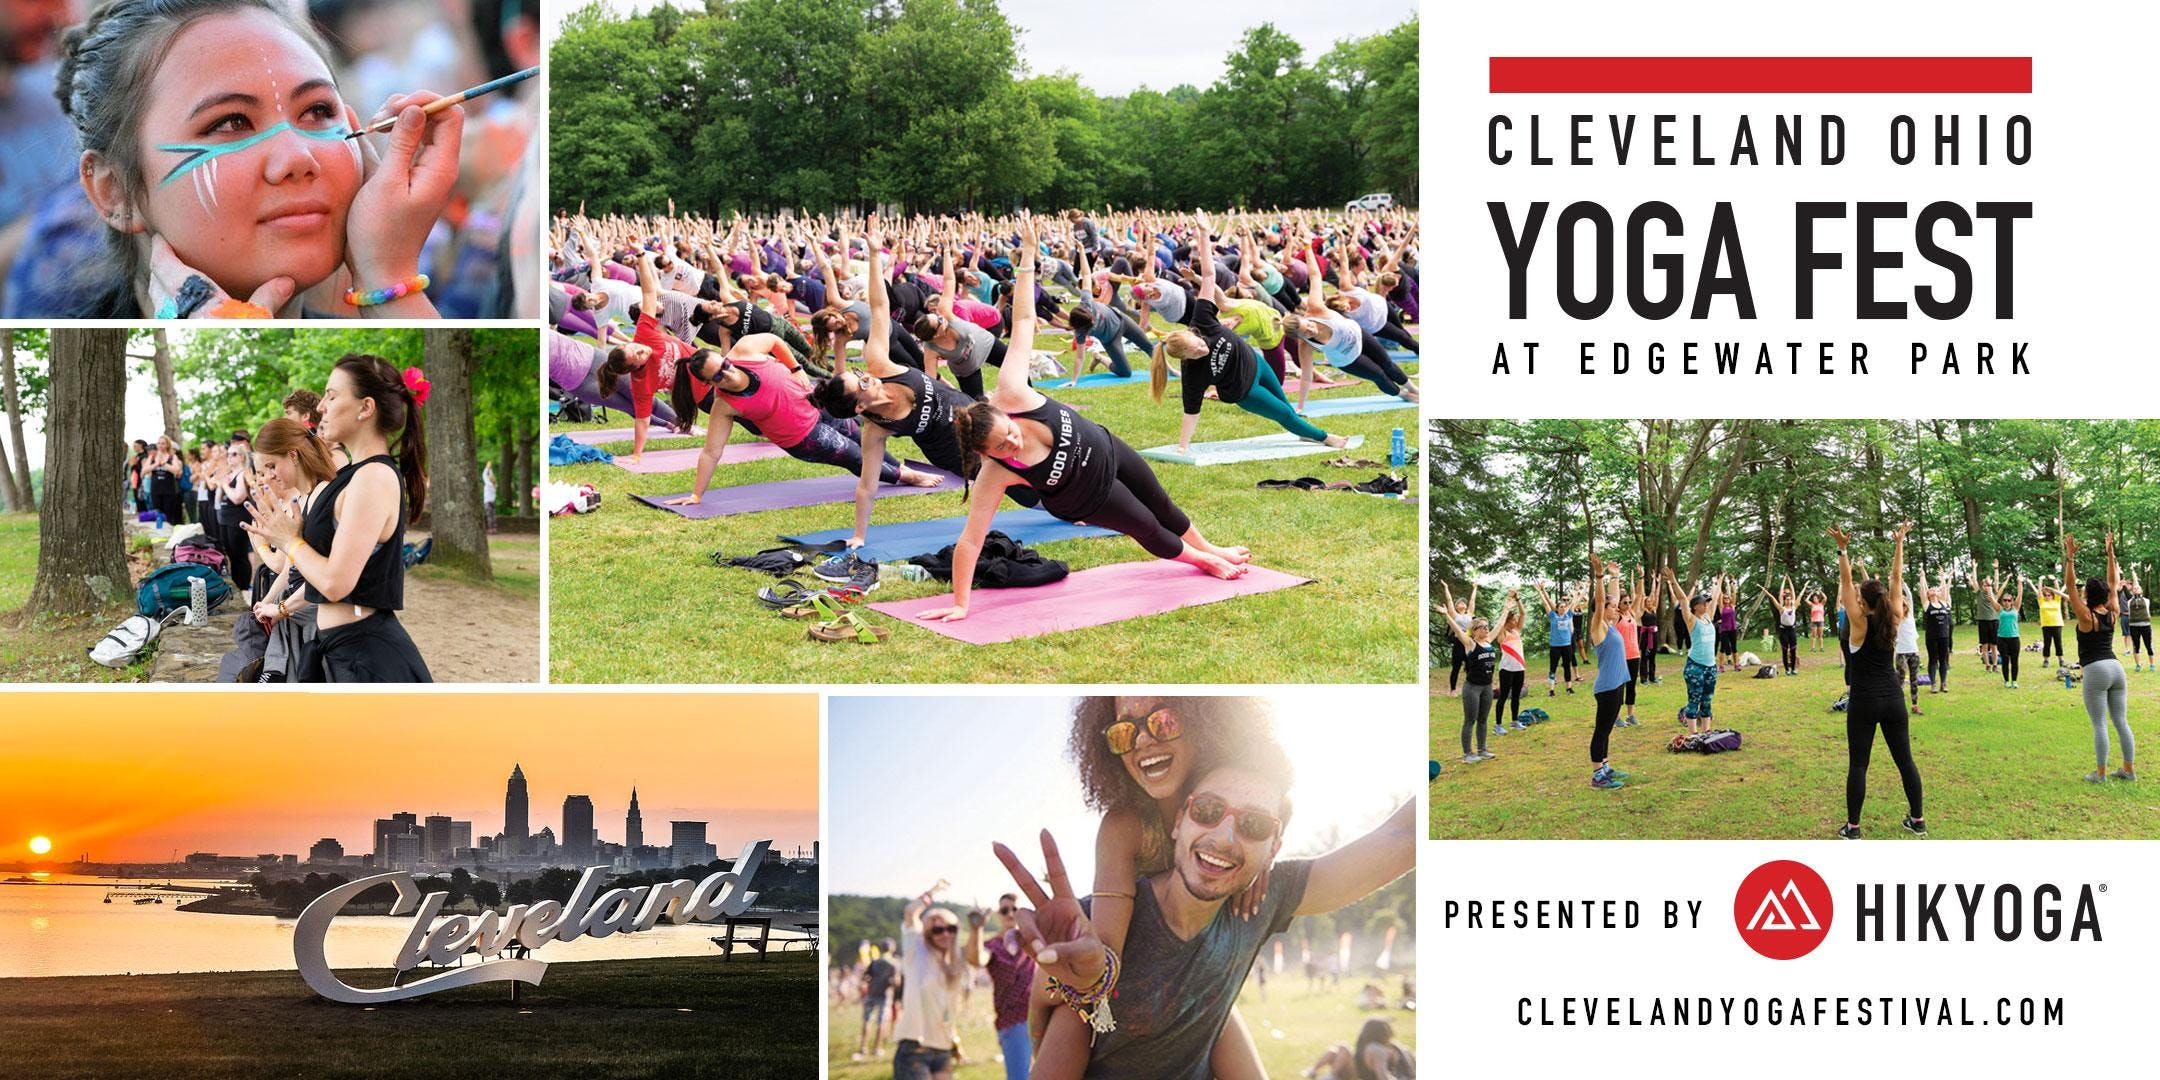 465ee9f5fd961 Cleveland Yoga Festival Presented by Hikyoga - 22 JUN 2019